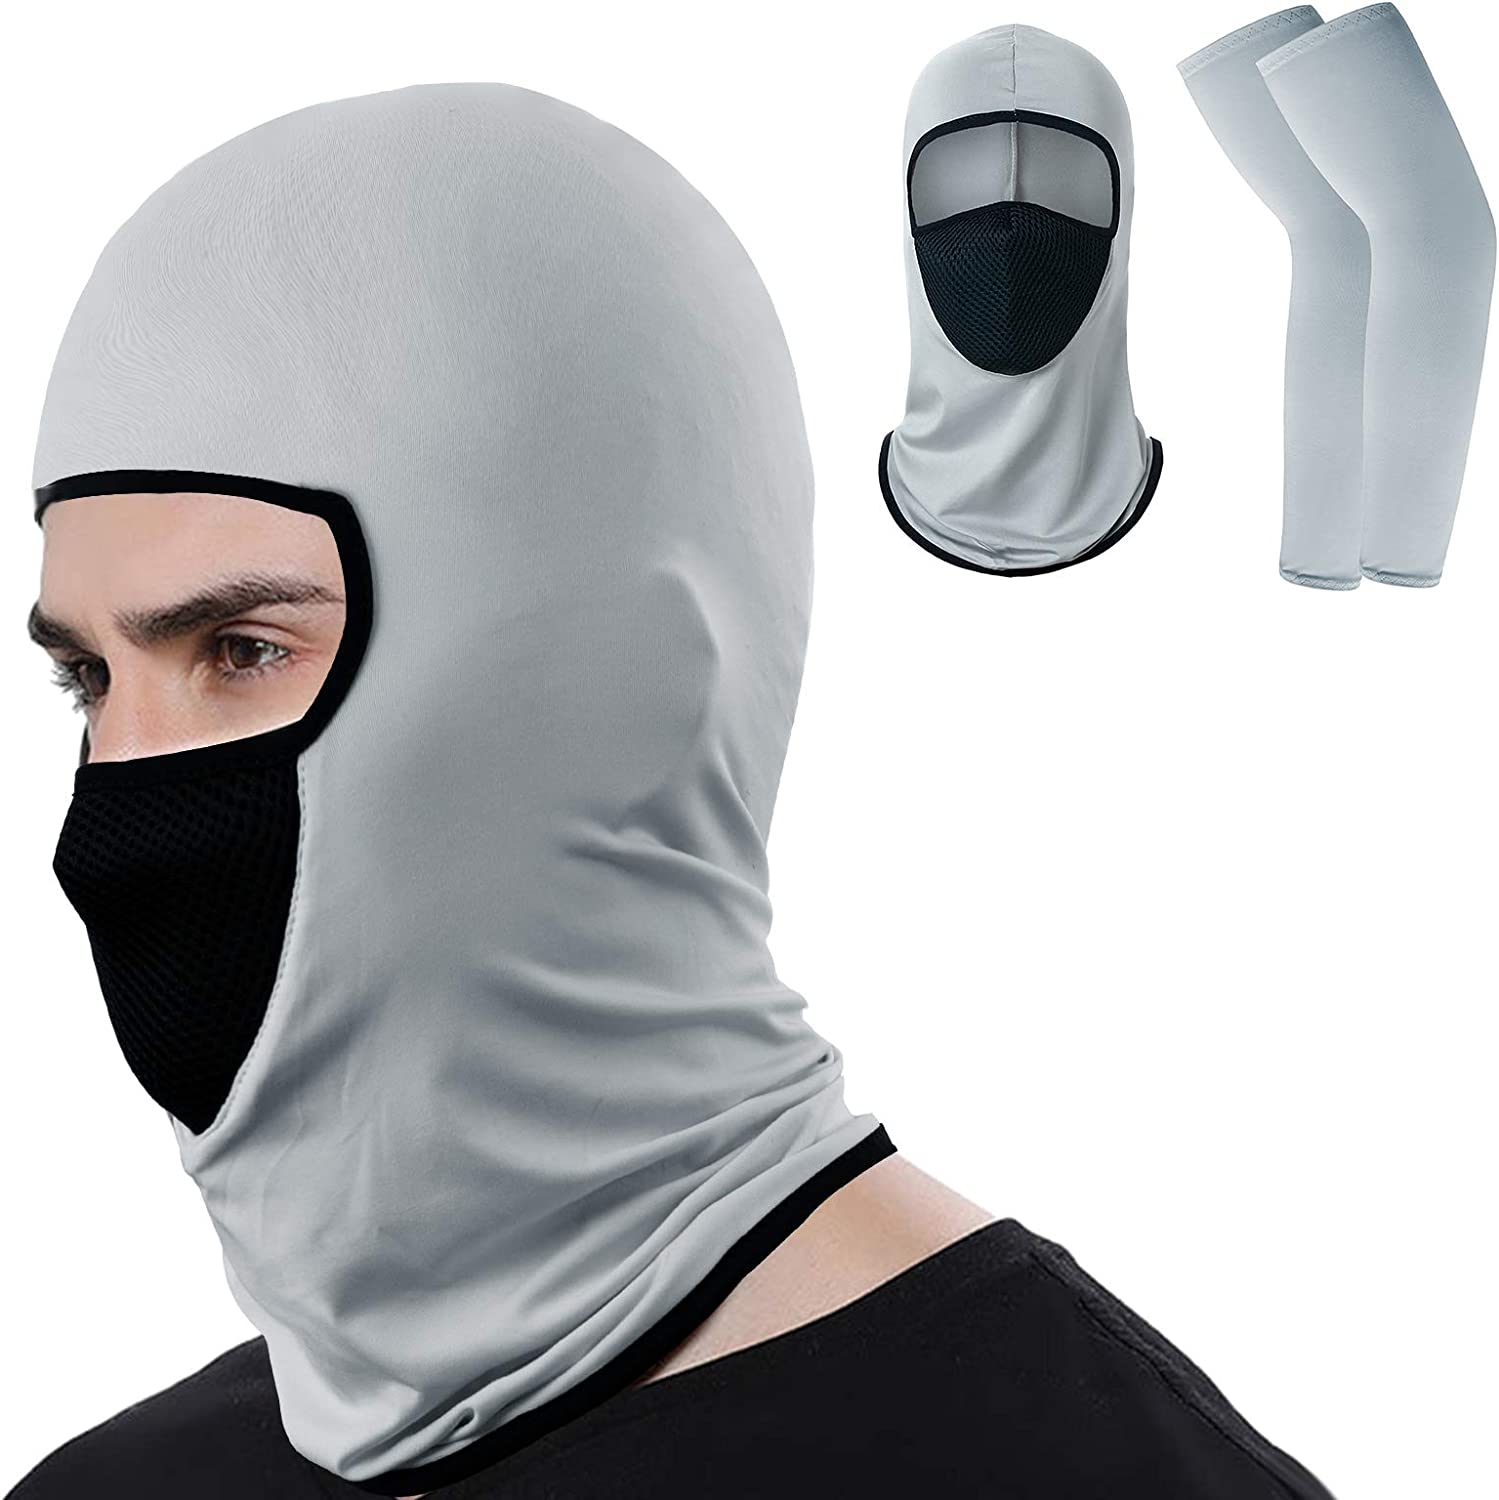 SVOPY Balaclava Riding Face Mask - UV Protector Cooling Neck Gaiter with Ice Silk Arm Cover Sleeves for Men/Women